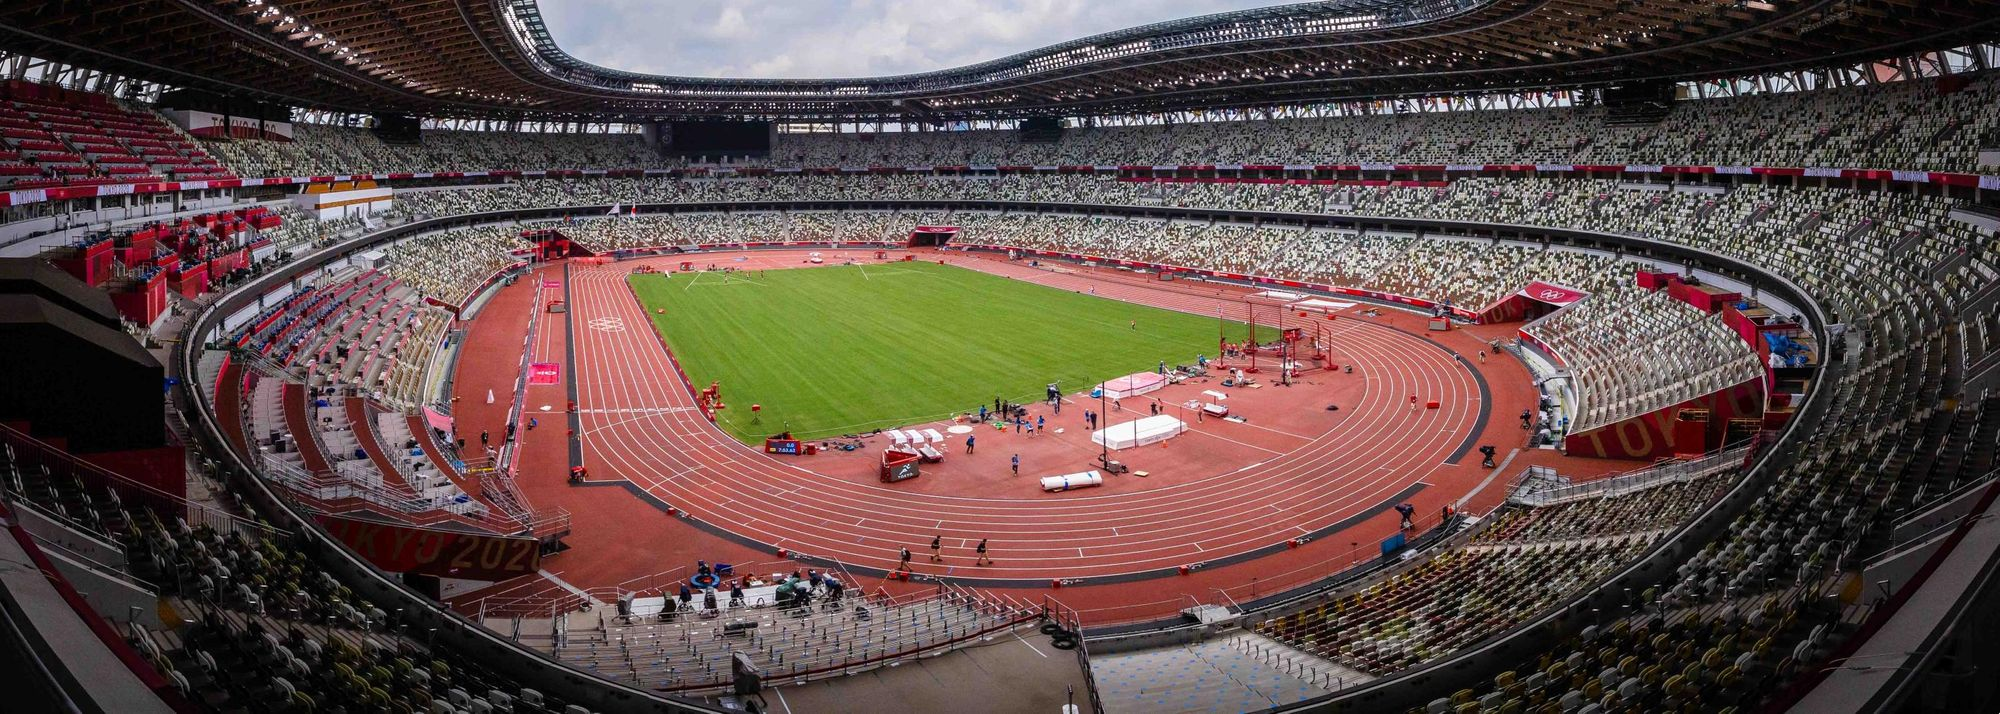 Four years, 11 months and nine days after the action in Rio came to a close, Olympic Games athletics will make its highly anticipated return at Tokyo's Olympic Stadium on Friday (30).